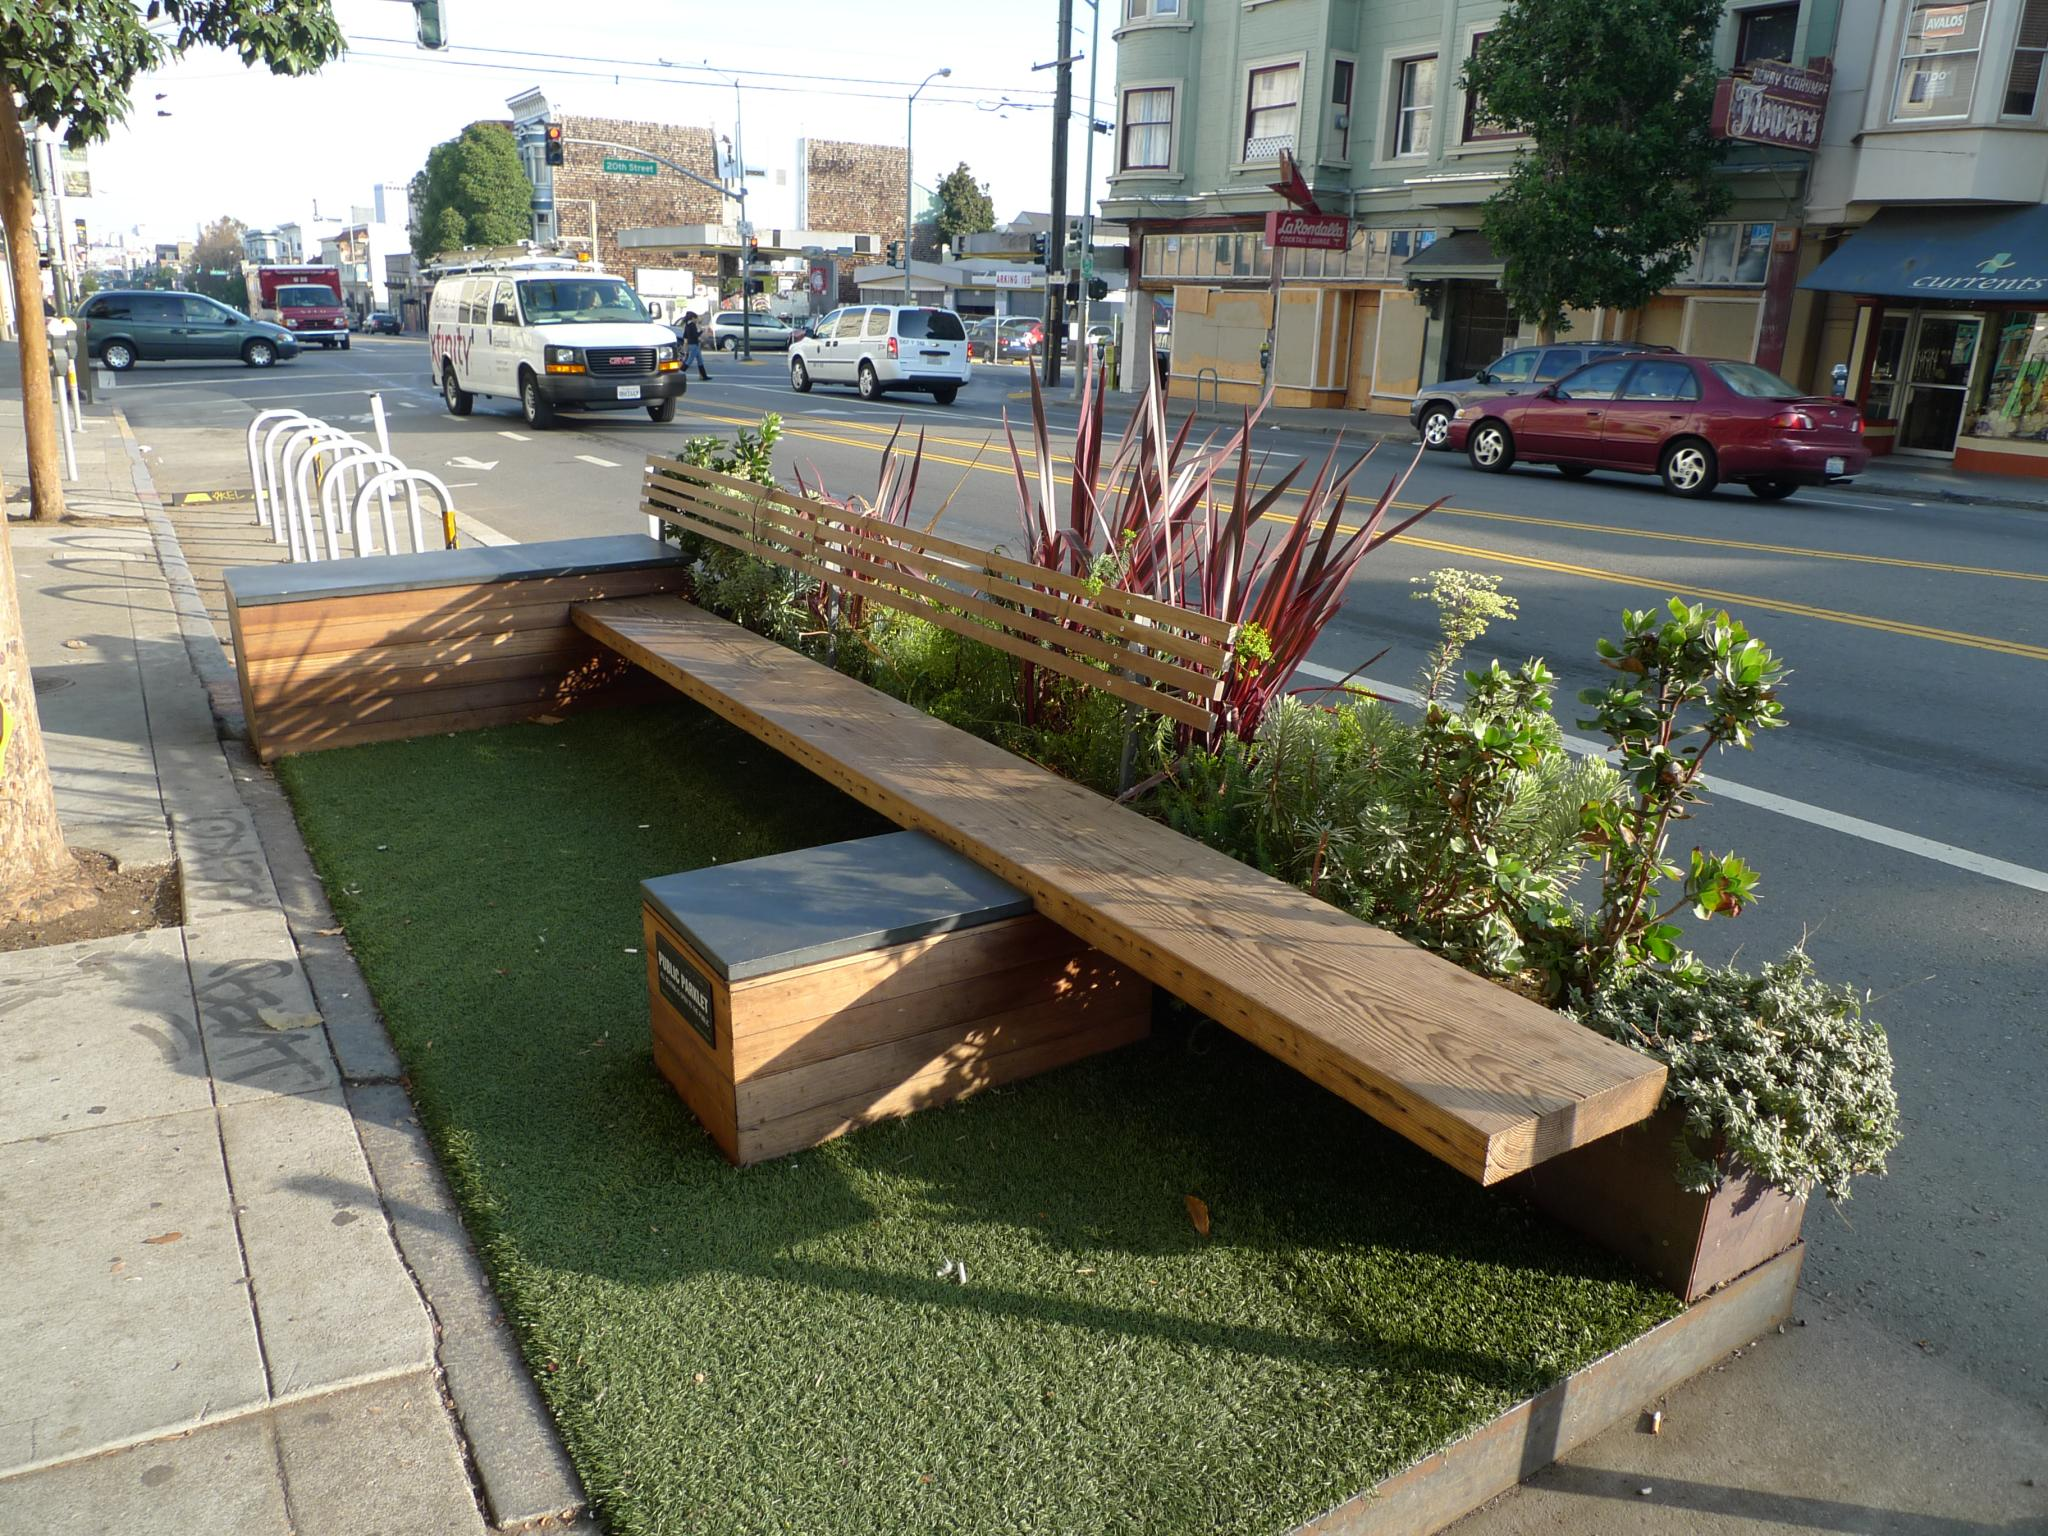 Parklet w San Francisco, fot. Mark Hogan / lic. CC-BY-2.0